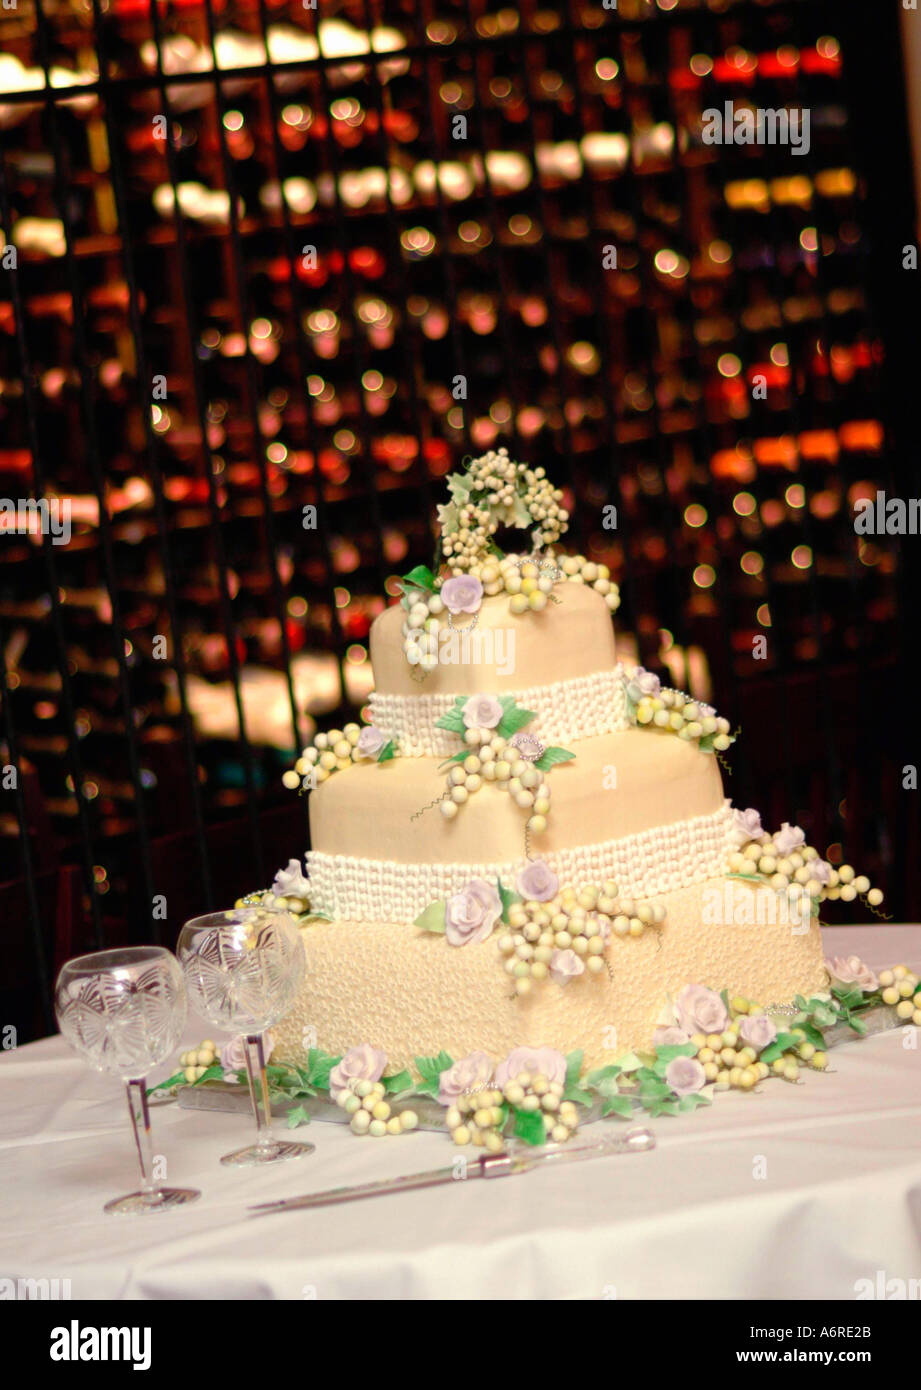 Wedding day element cream wedding cake on table in front of wine ...